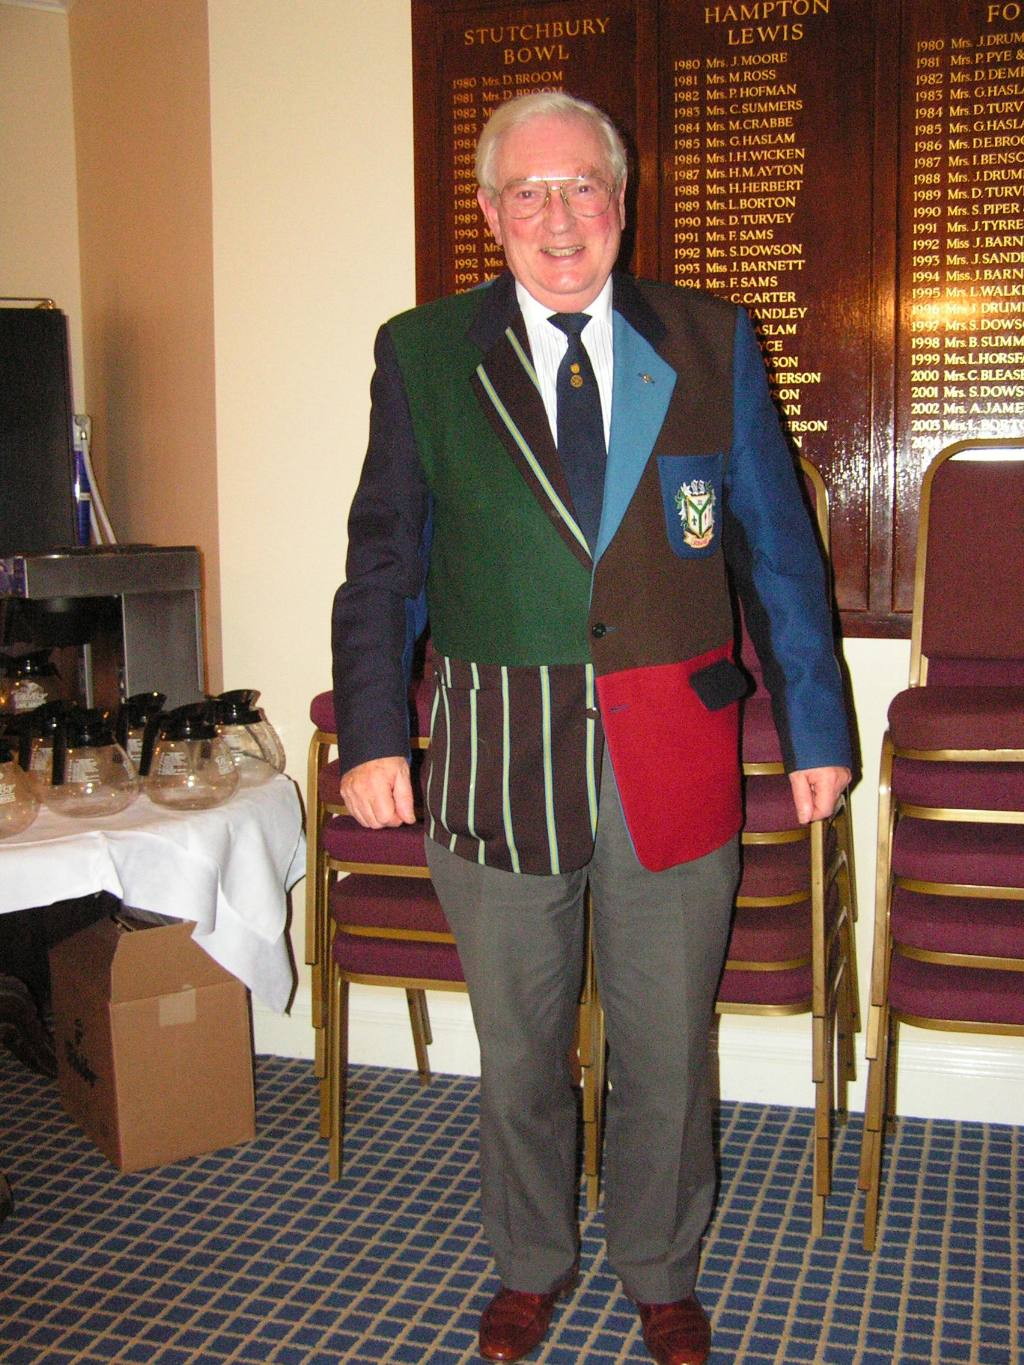 Club Members - PP Len Smith (who has a strange taste in tailoring!) is a Past President of RIBI.